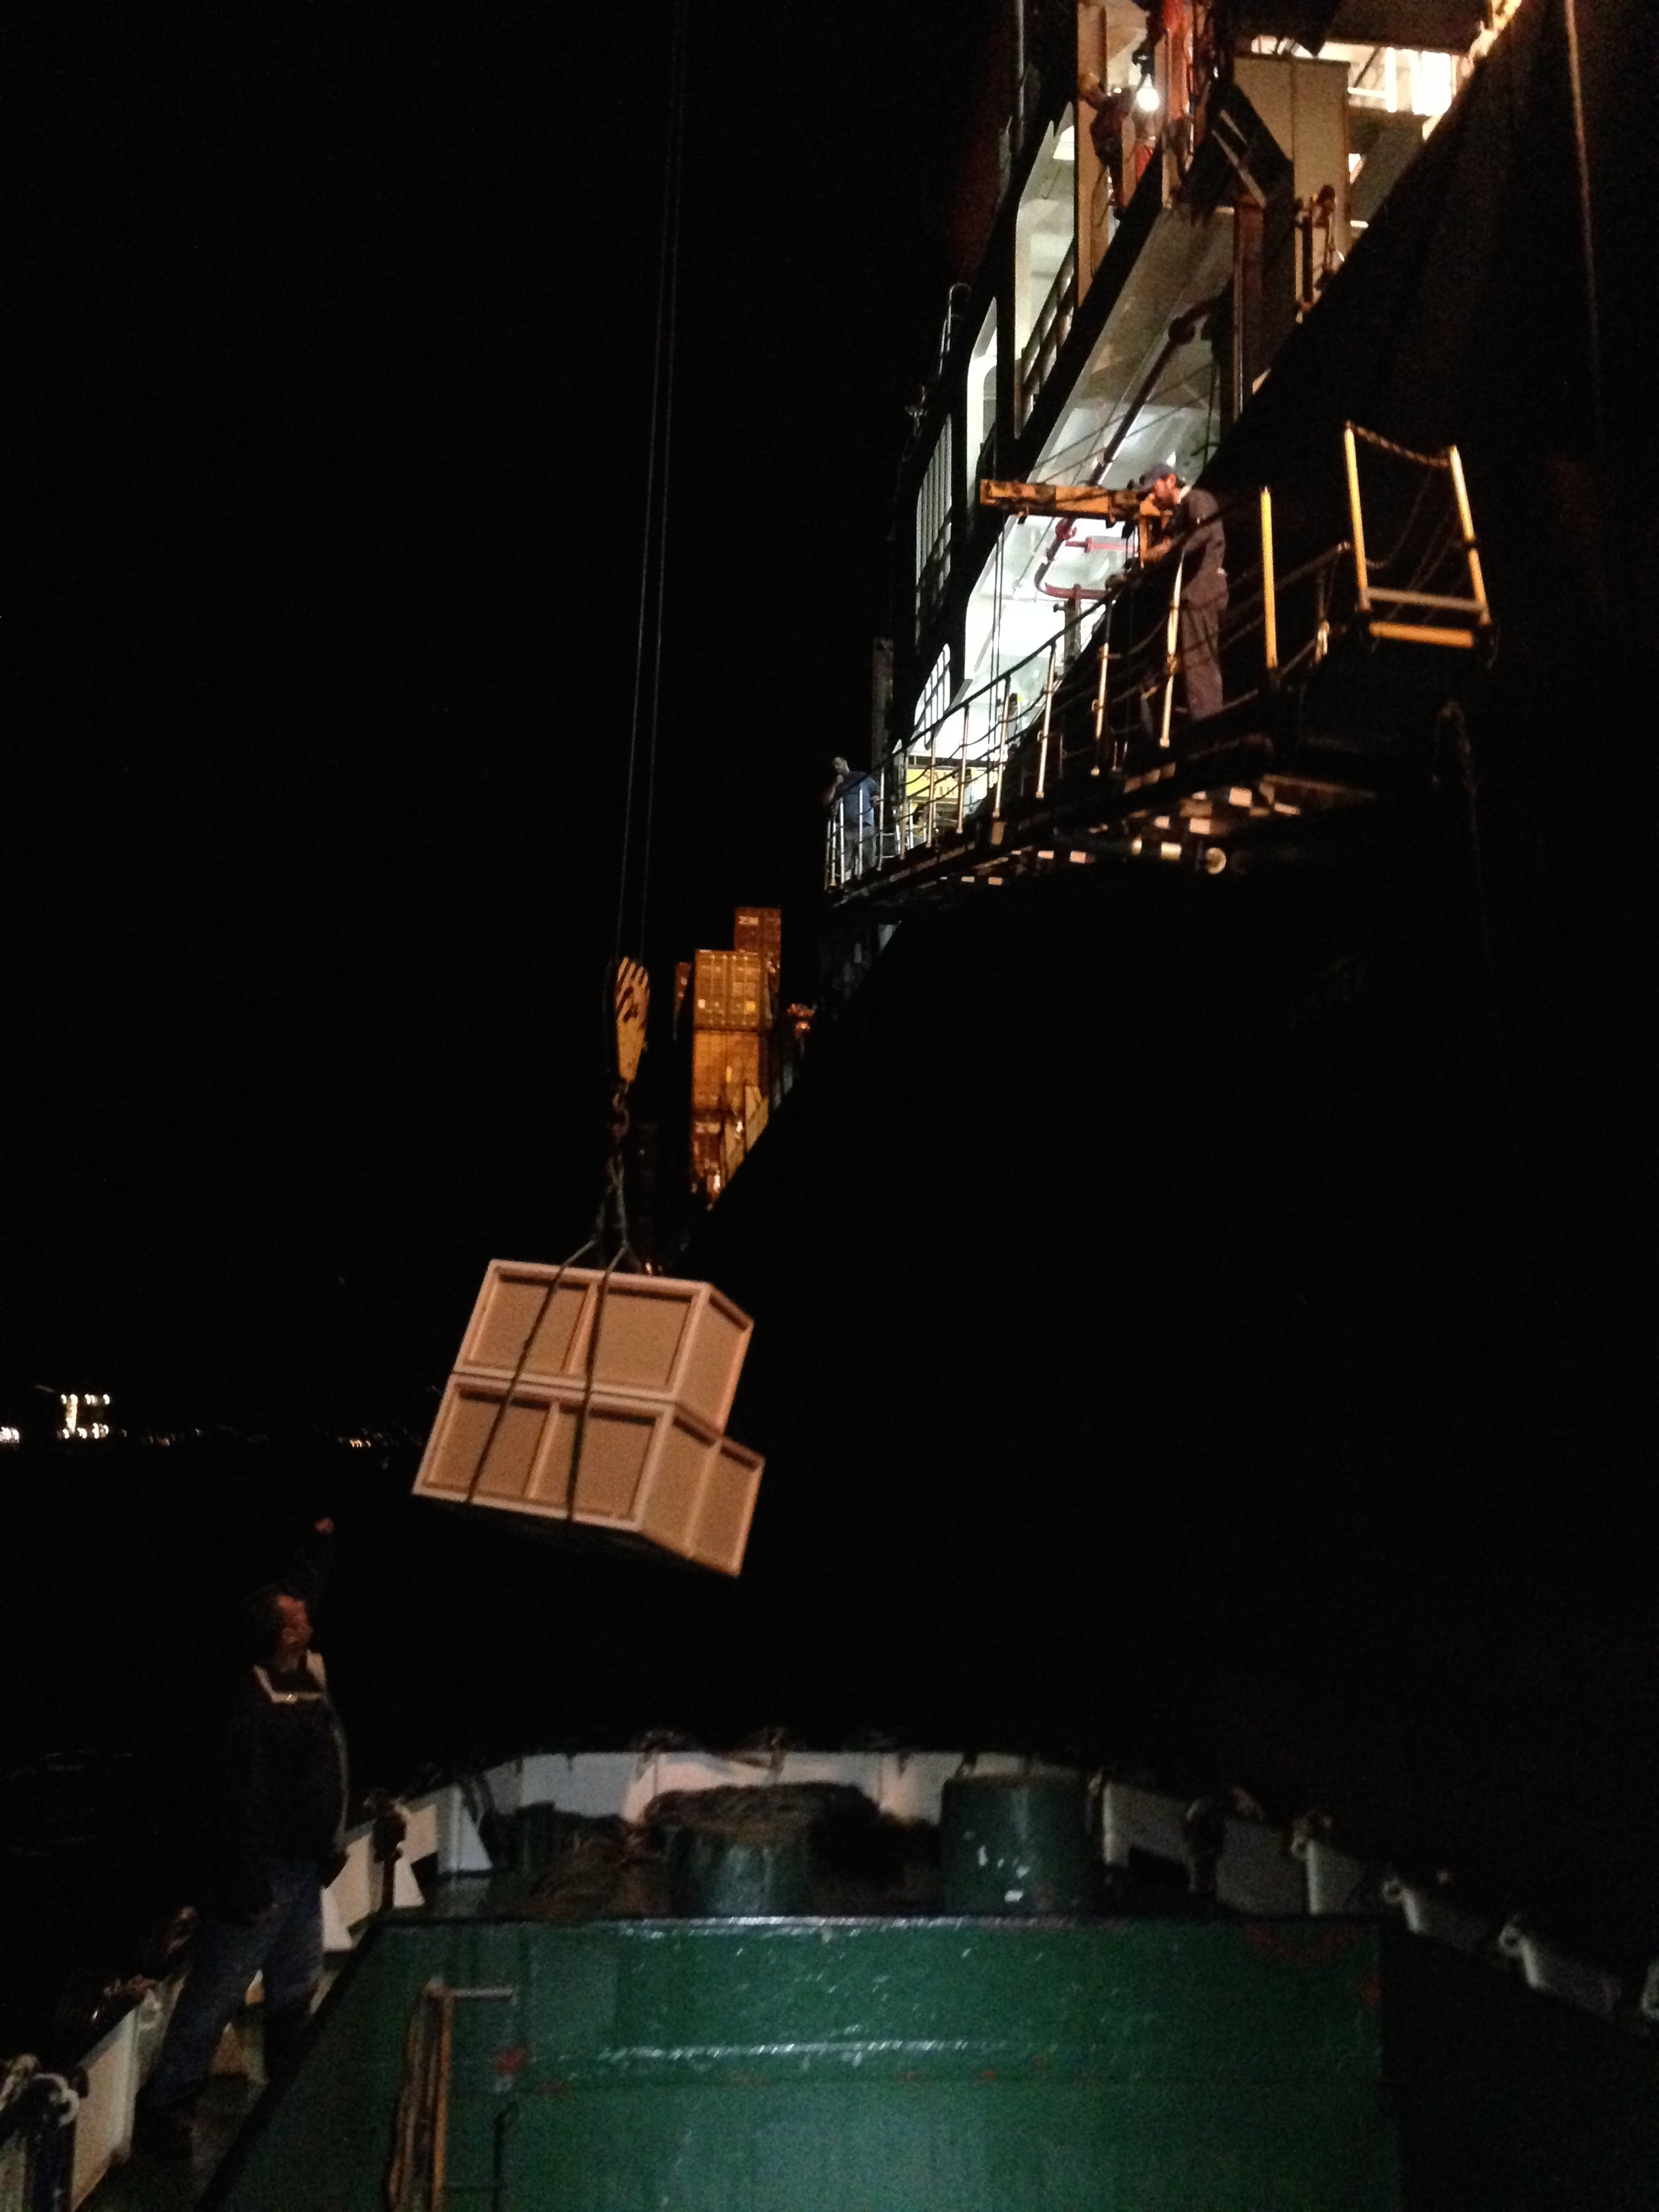 Page's crates sculpture boarding the container ship at night Photo: Maayan Strauss